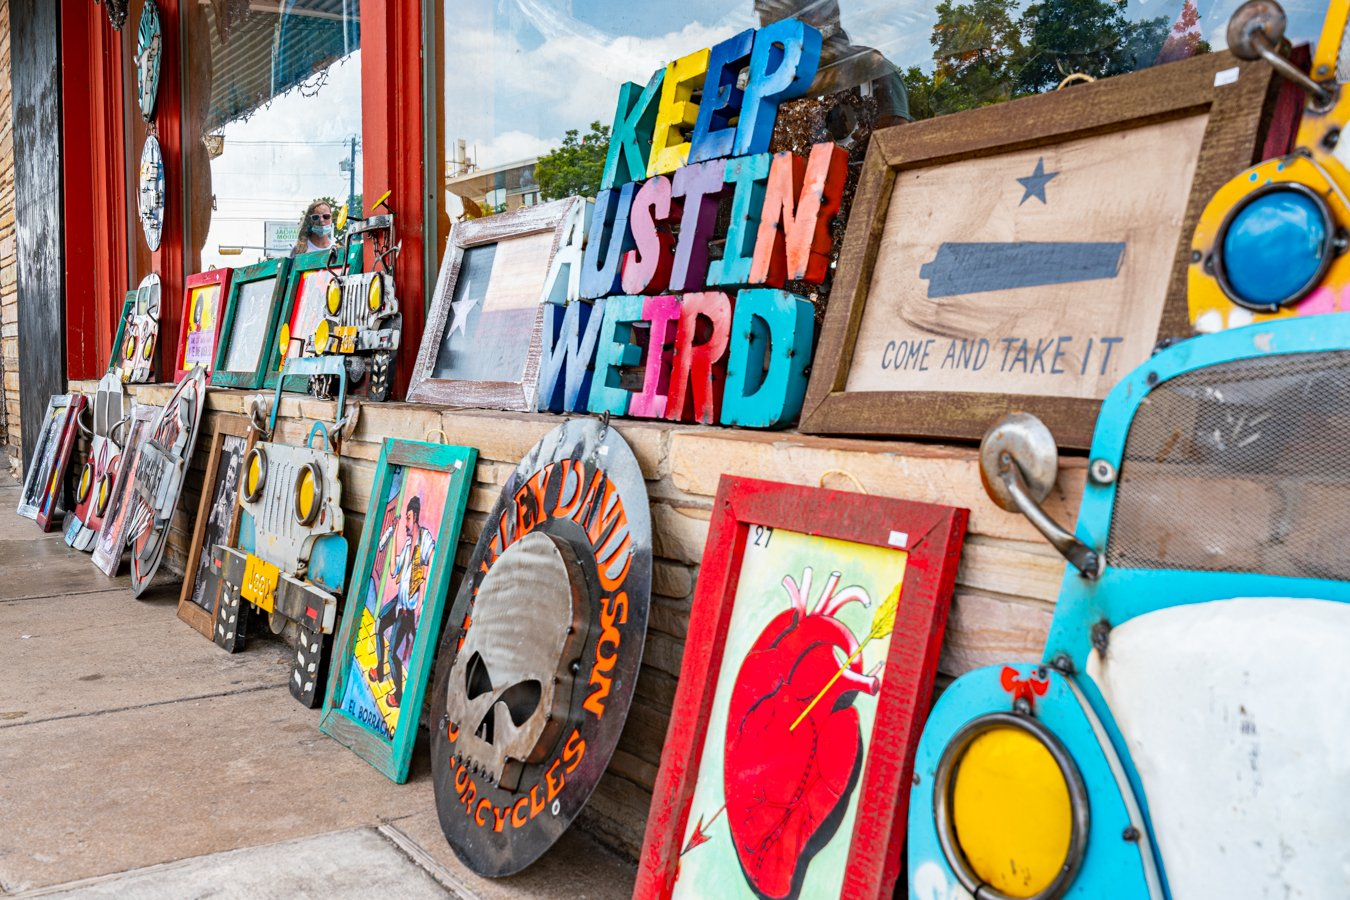 collection of art for sale on south congress, including a keep austin weird sign, one of the best quotes about austin texas